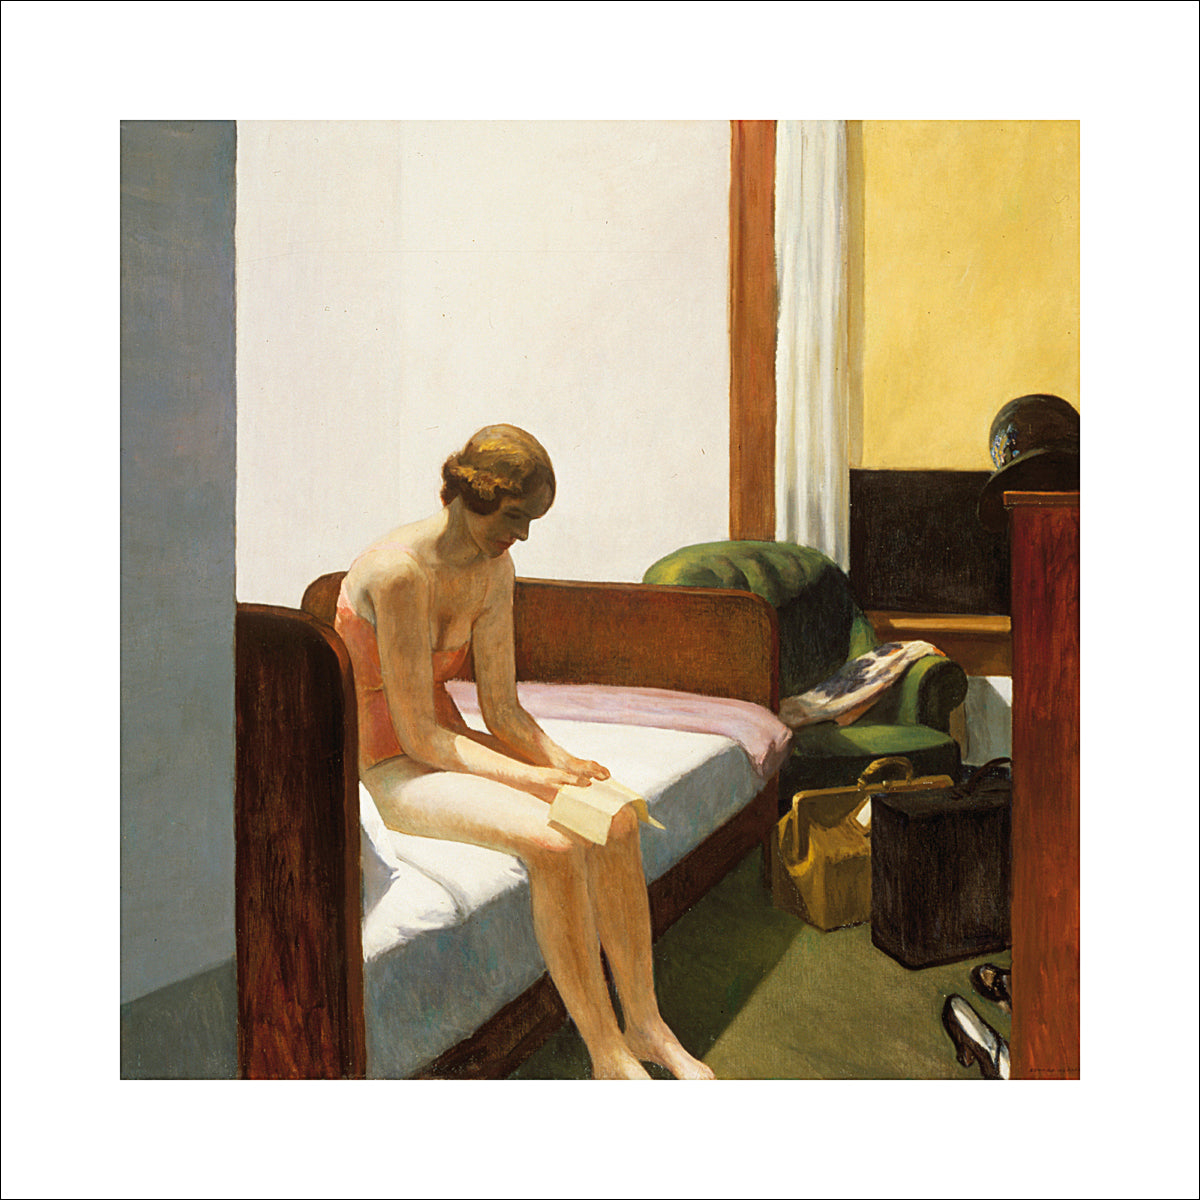 Edward Hopper - Hotel room, 1931